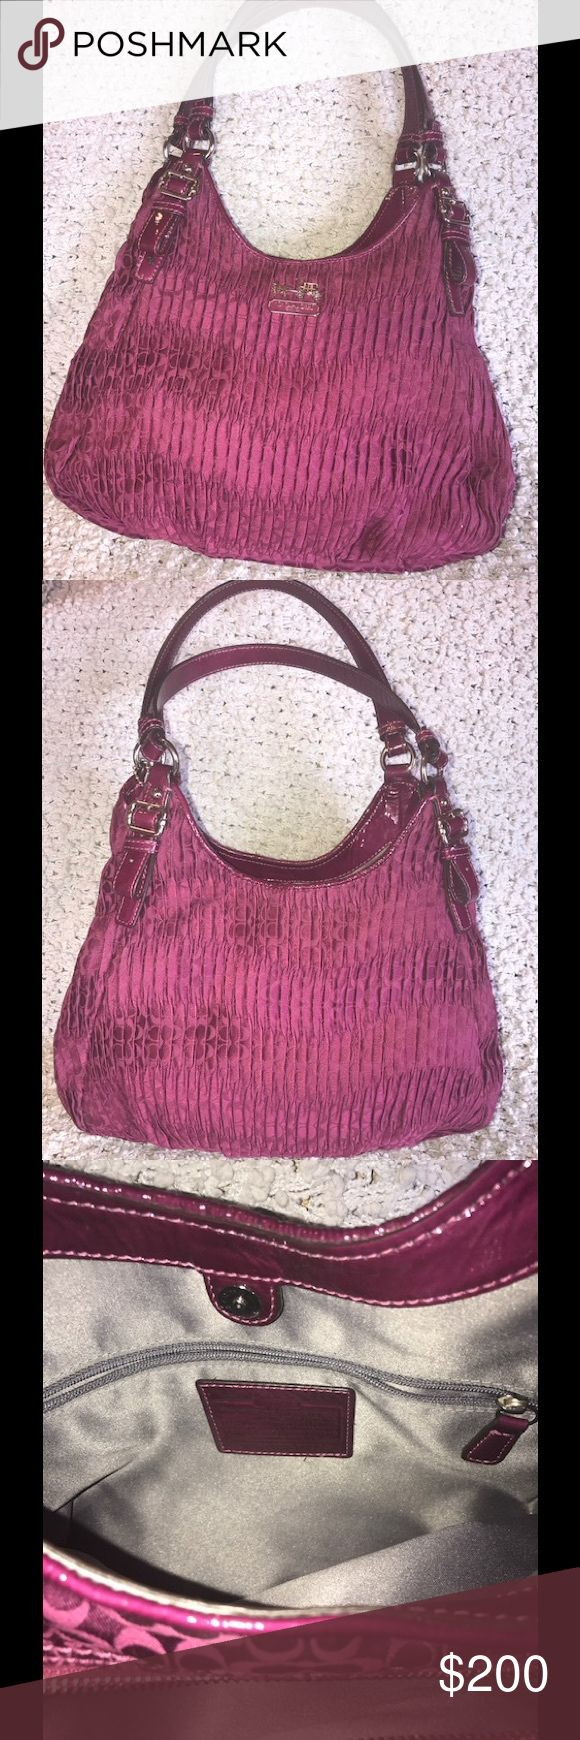 Brand new COACH 👛 Brand-new burgundy COACH handbag!!  Excellent condition!  Save if you bundle up. Spring cleaning out my designer handbags. Coach Bags Shoulder Bags